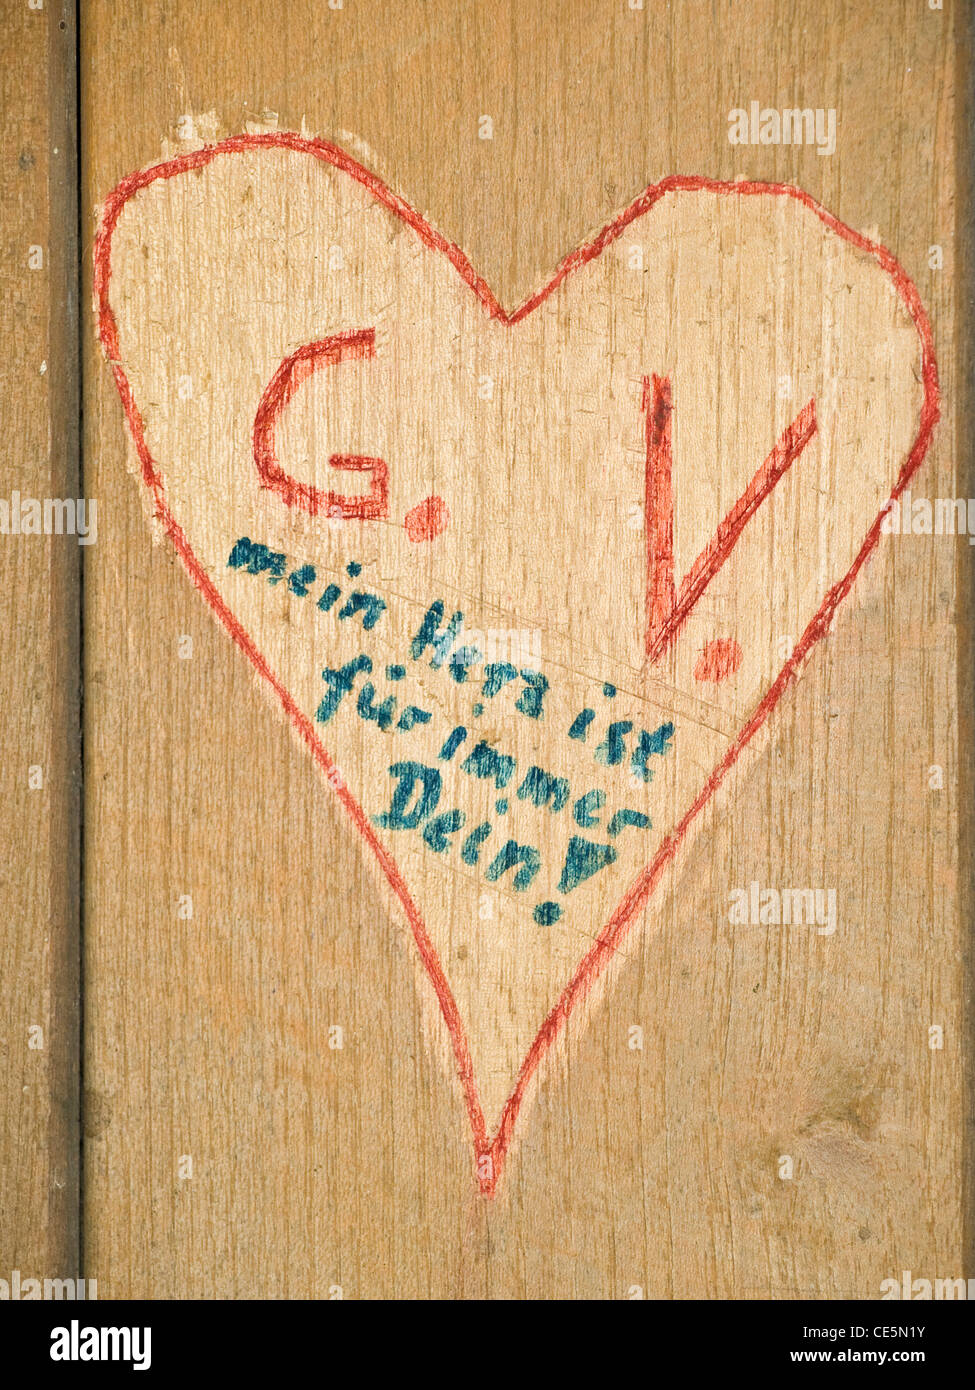 ein in Holz gemaltes und geritztes Herz   a heart is into wood painted and carved - Stock Image